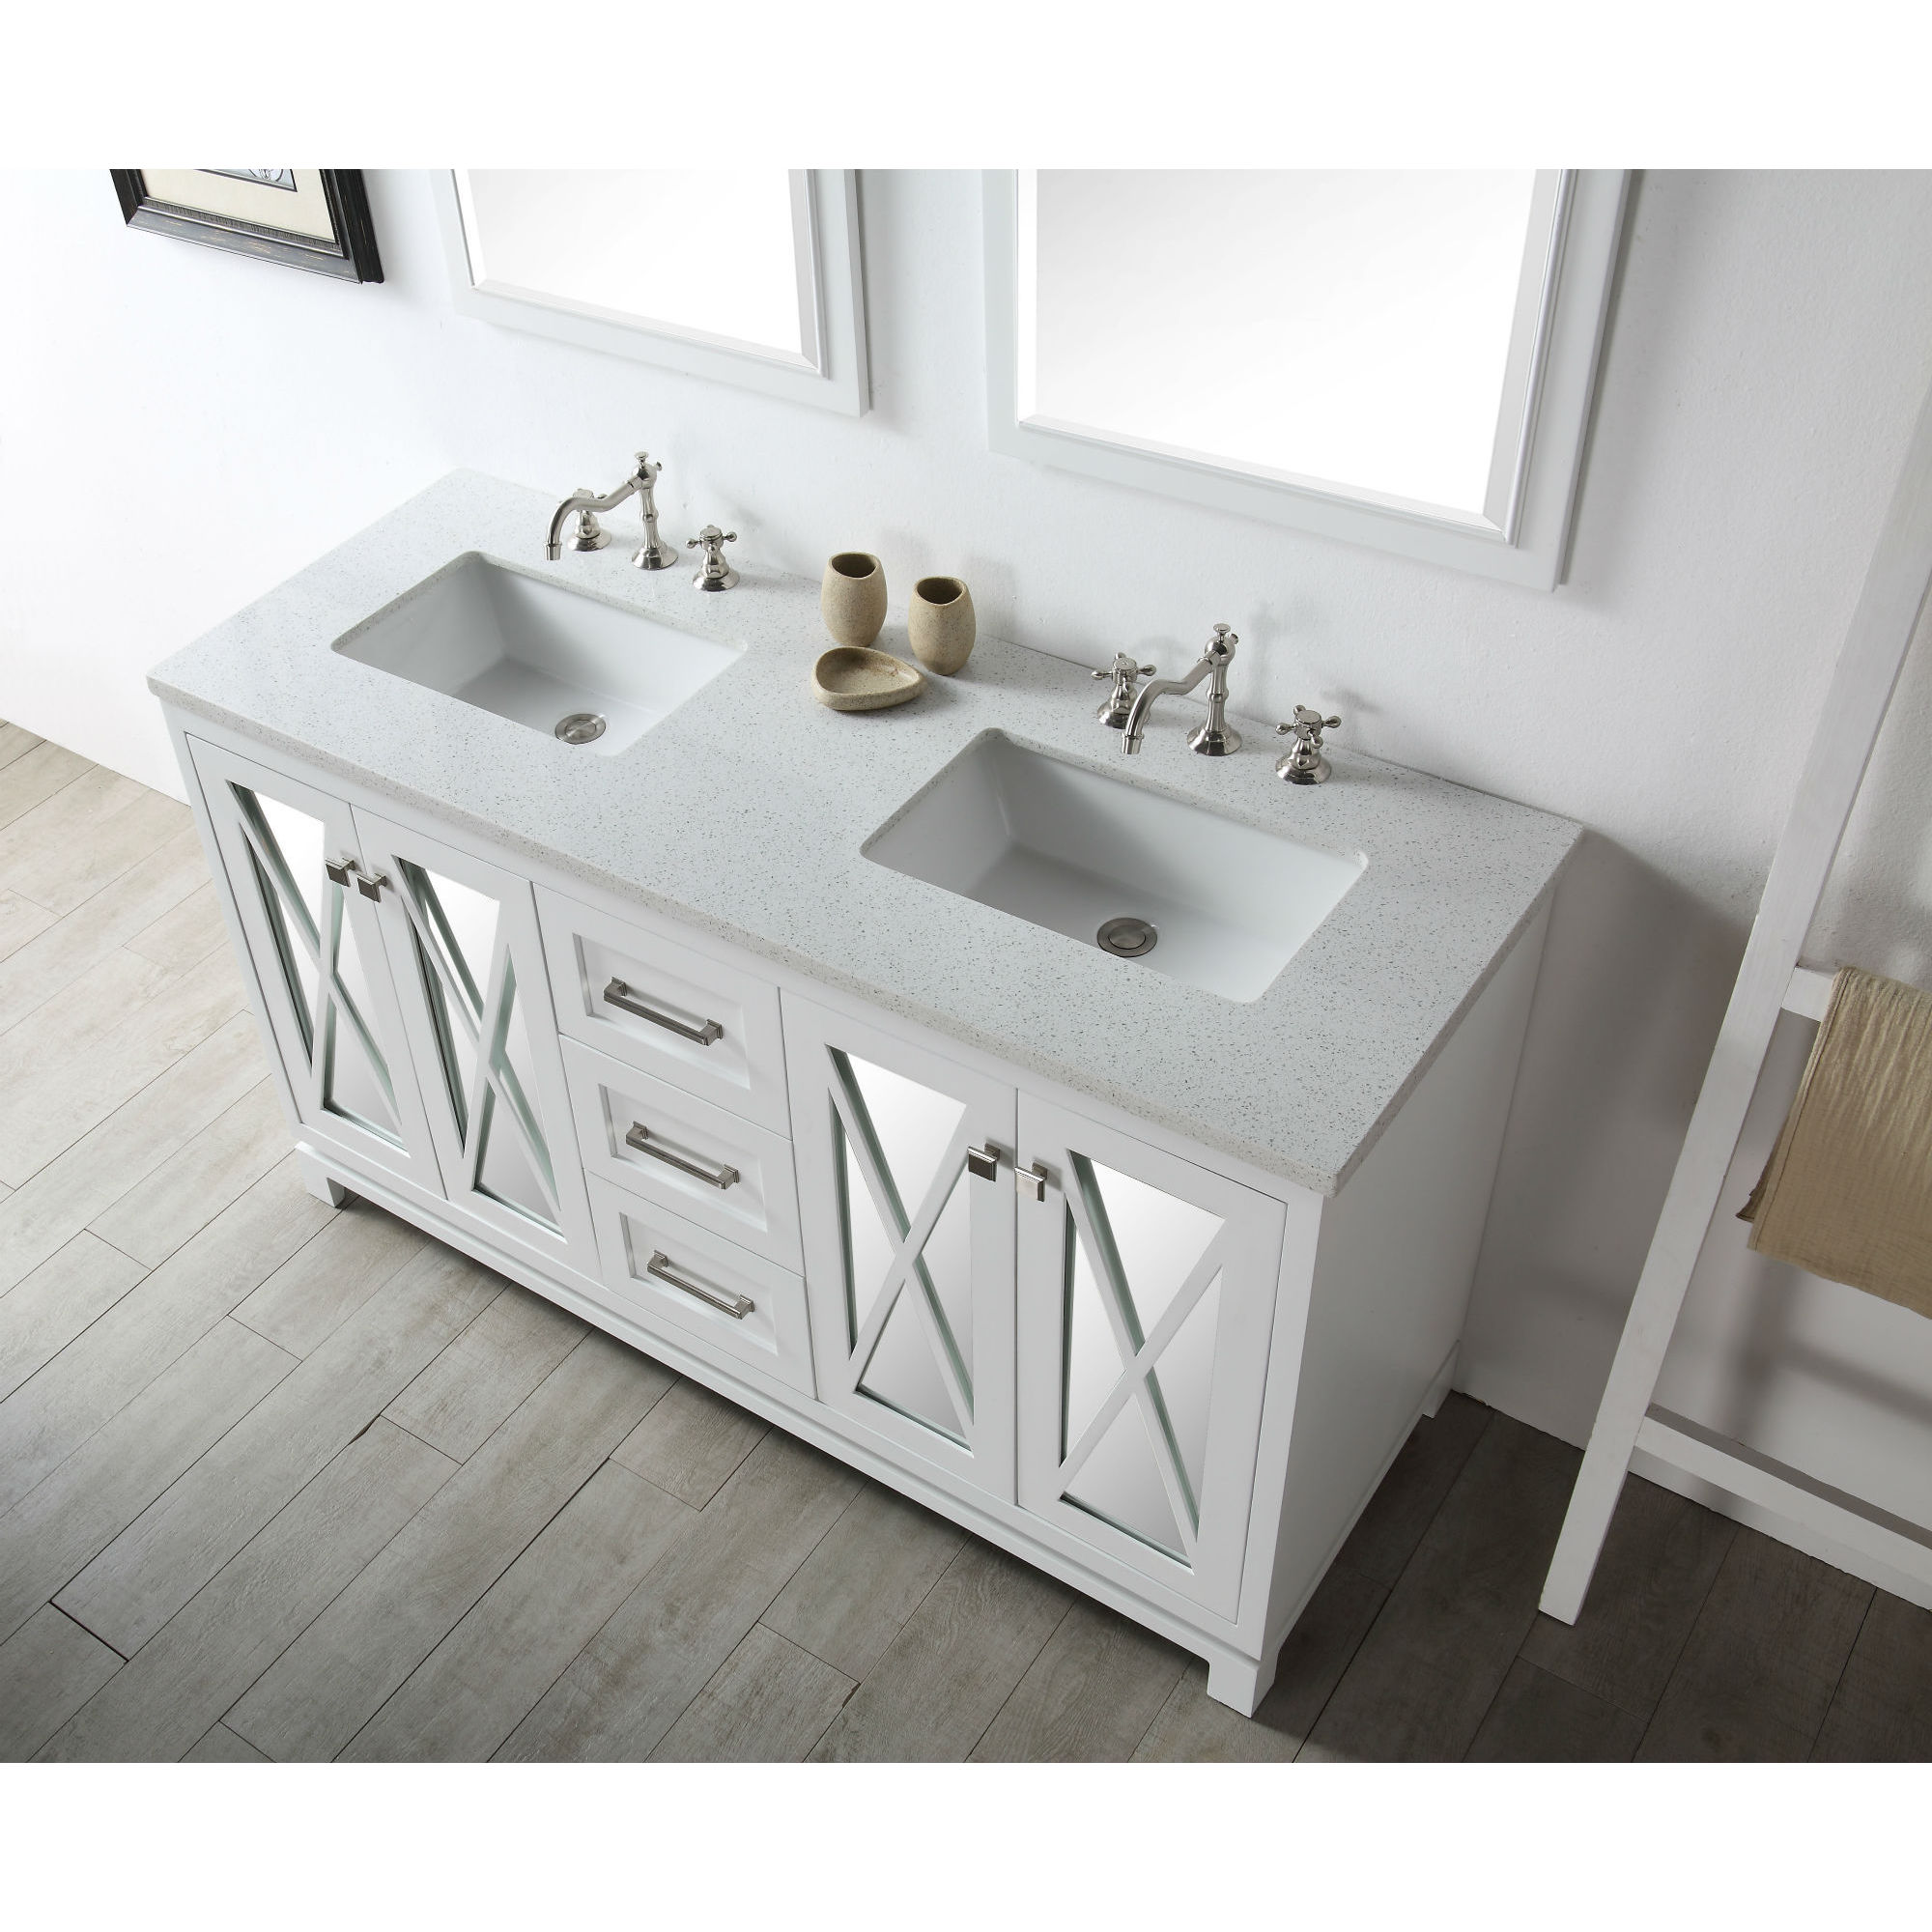 60 In White Double Bathroom Vanity With Quartz Top Overstock 12747380